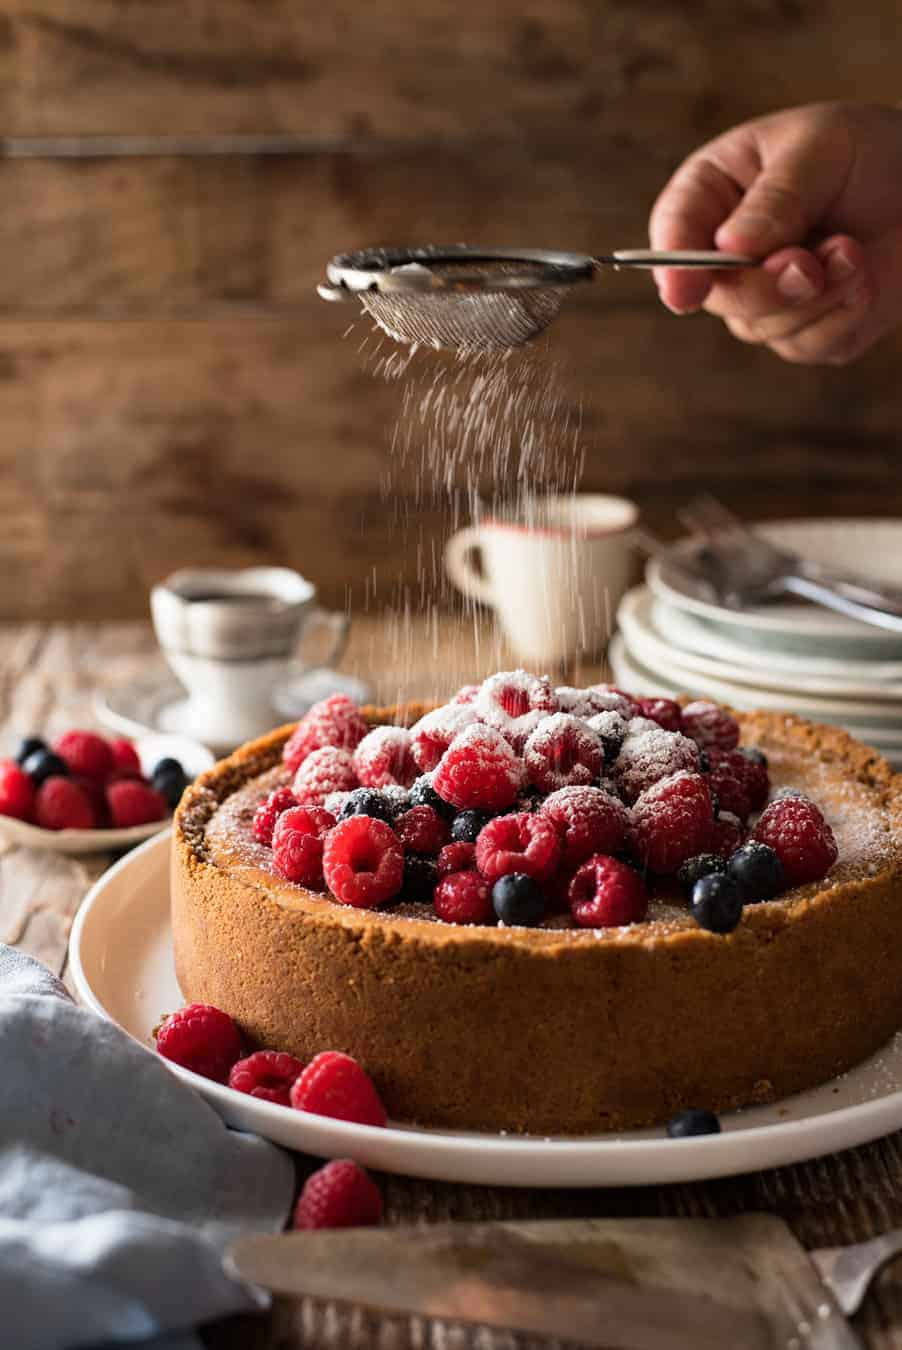 Easy Classic Baked Cheesecake - Creamy and rich, yet light, with a couple of secret tips, this is surprisingly easy to make! Video tutorial included.